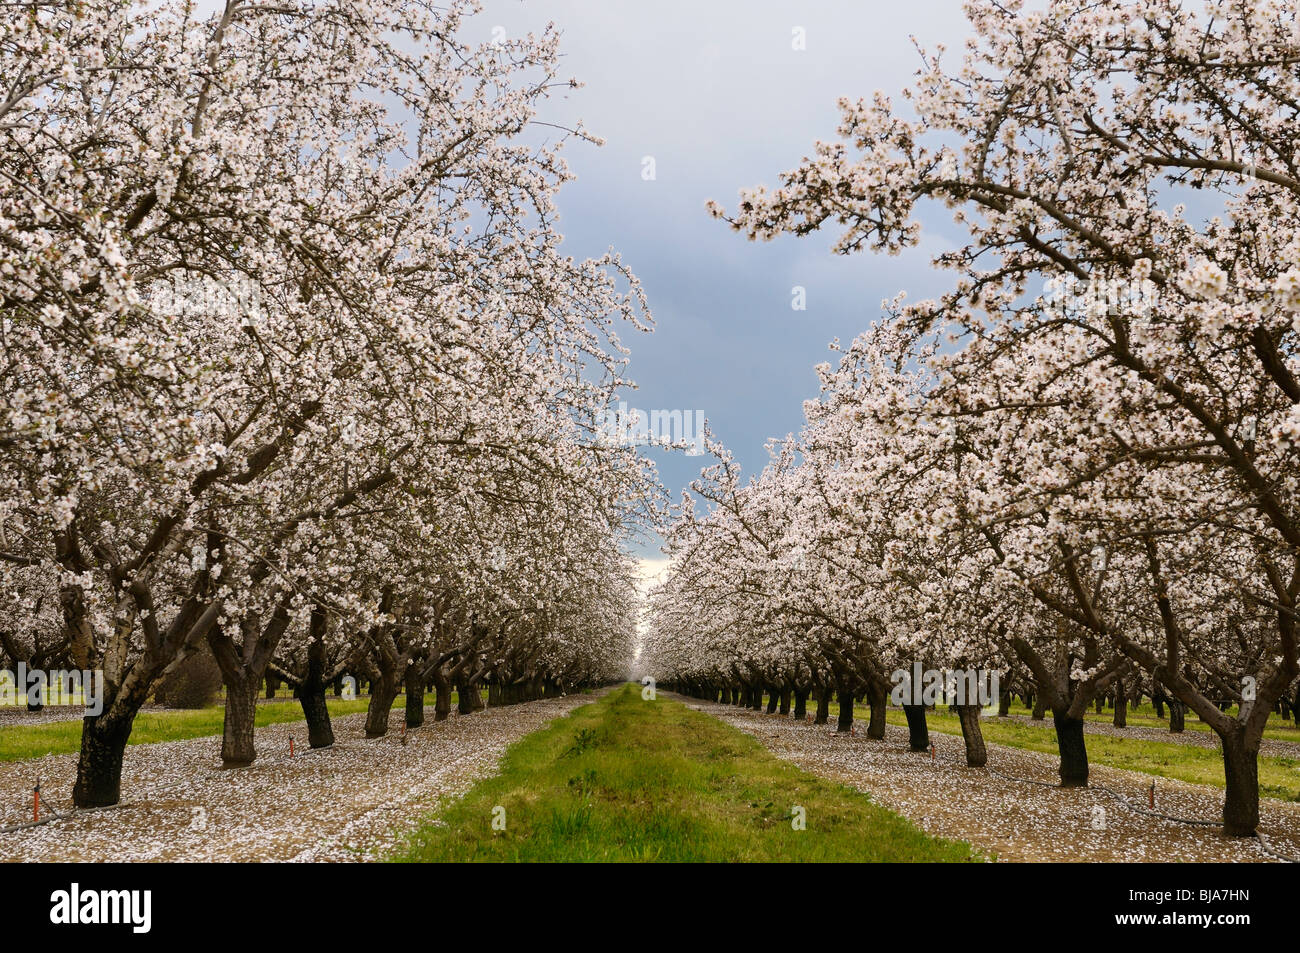 Rows of flowering almond tree grove blossoms in California USA Stock Photo